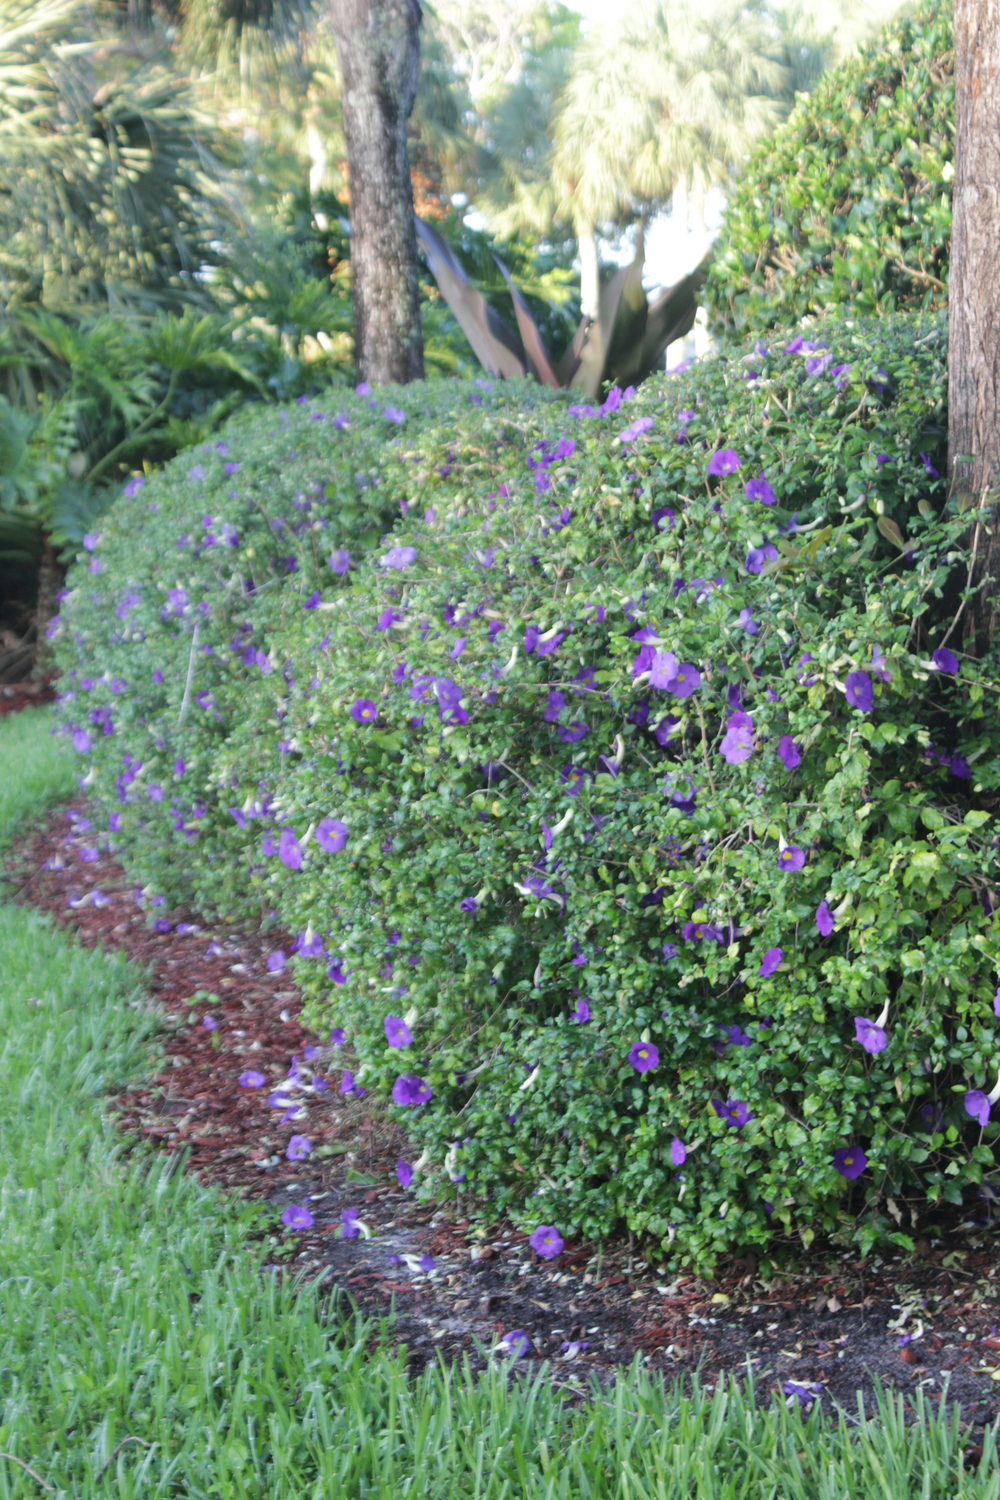 These Bush Clock-vine (Thunbergia Erecta) hedges are mostly green throughout the year, maybe because the landscapers come and shave them into balls when they really have a lovely spreading shrub nature when left alone.   But now are filled with purple tubular flowers...